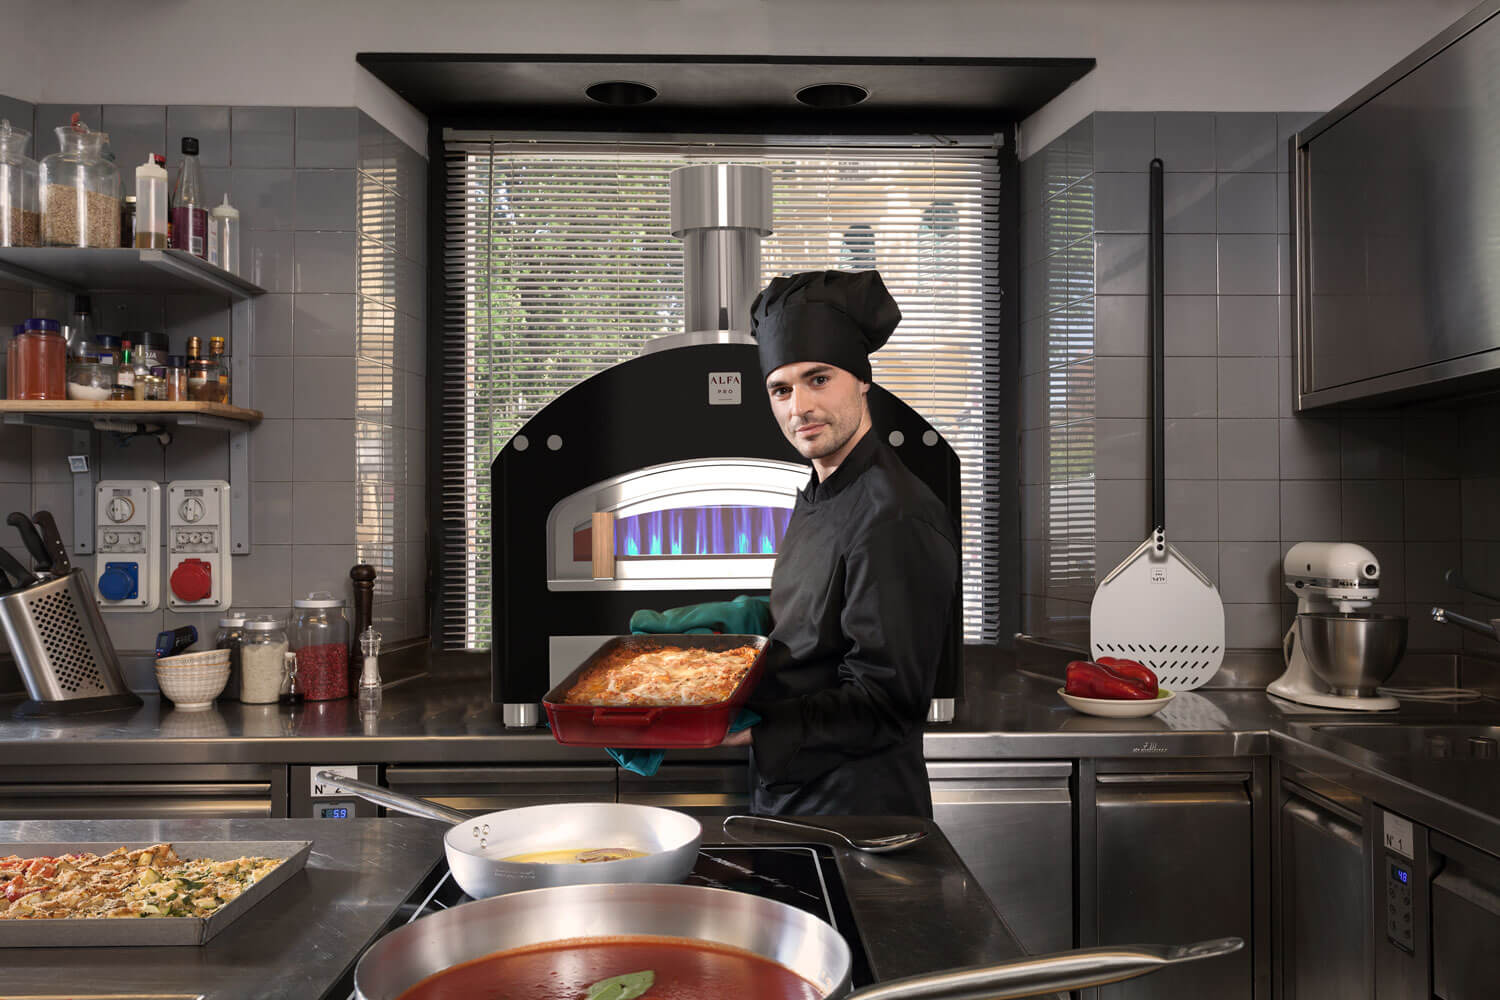 piazza-pizza-ovens-chef-cookign-with-compact-flame